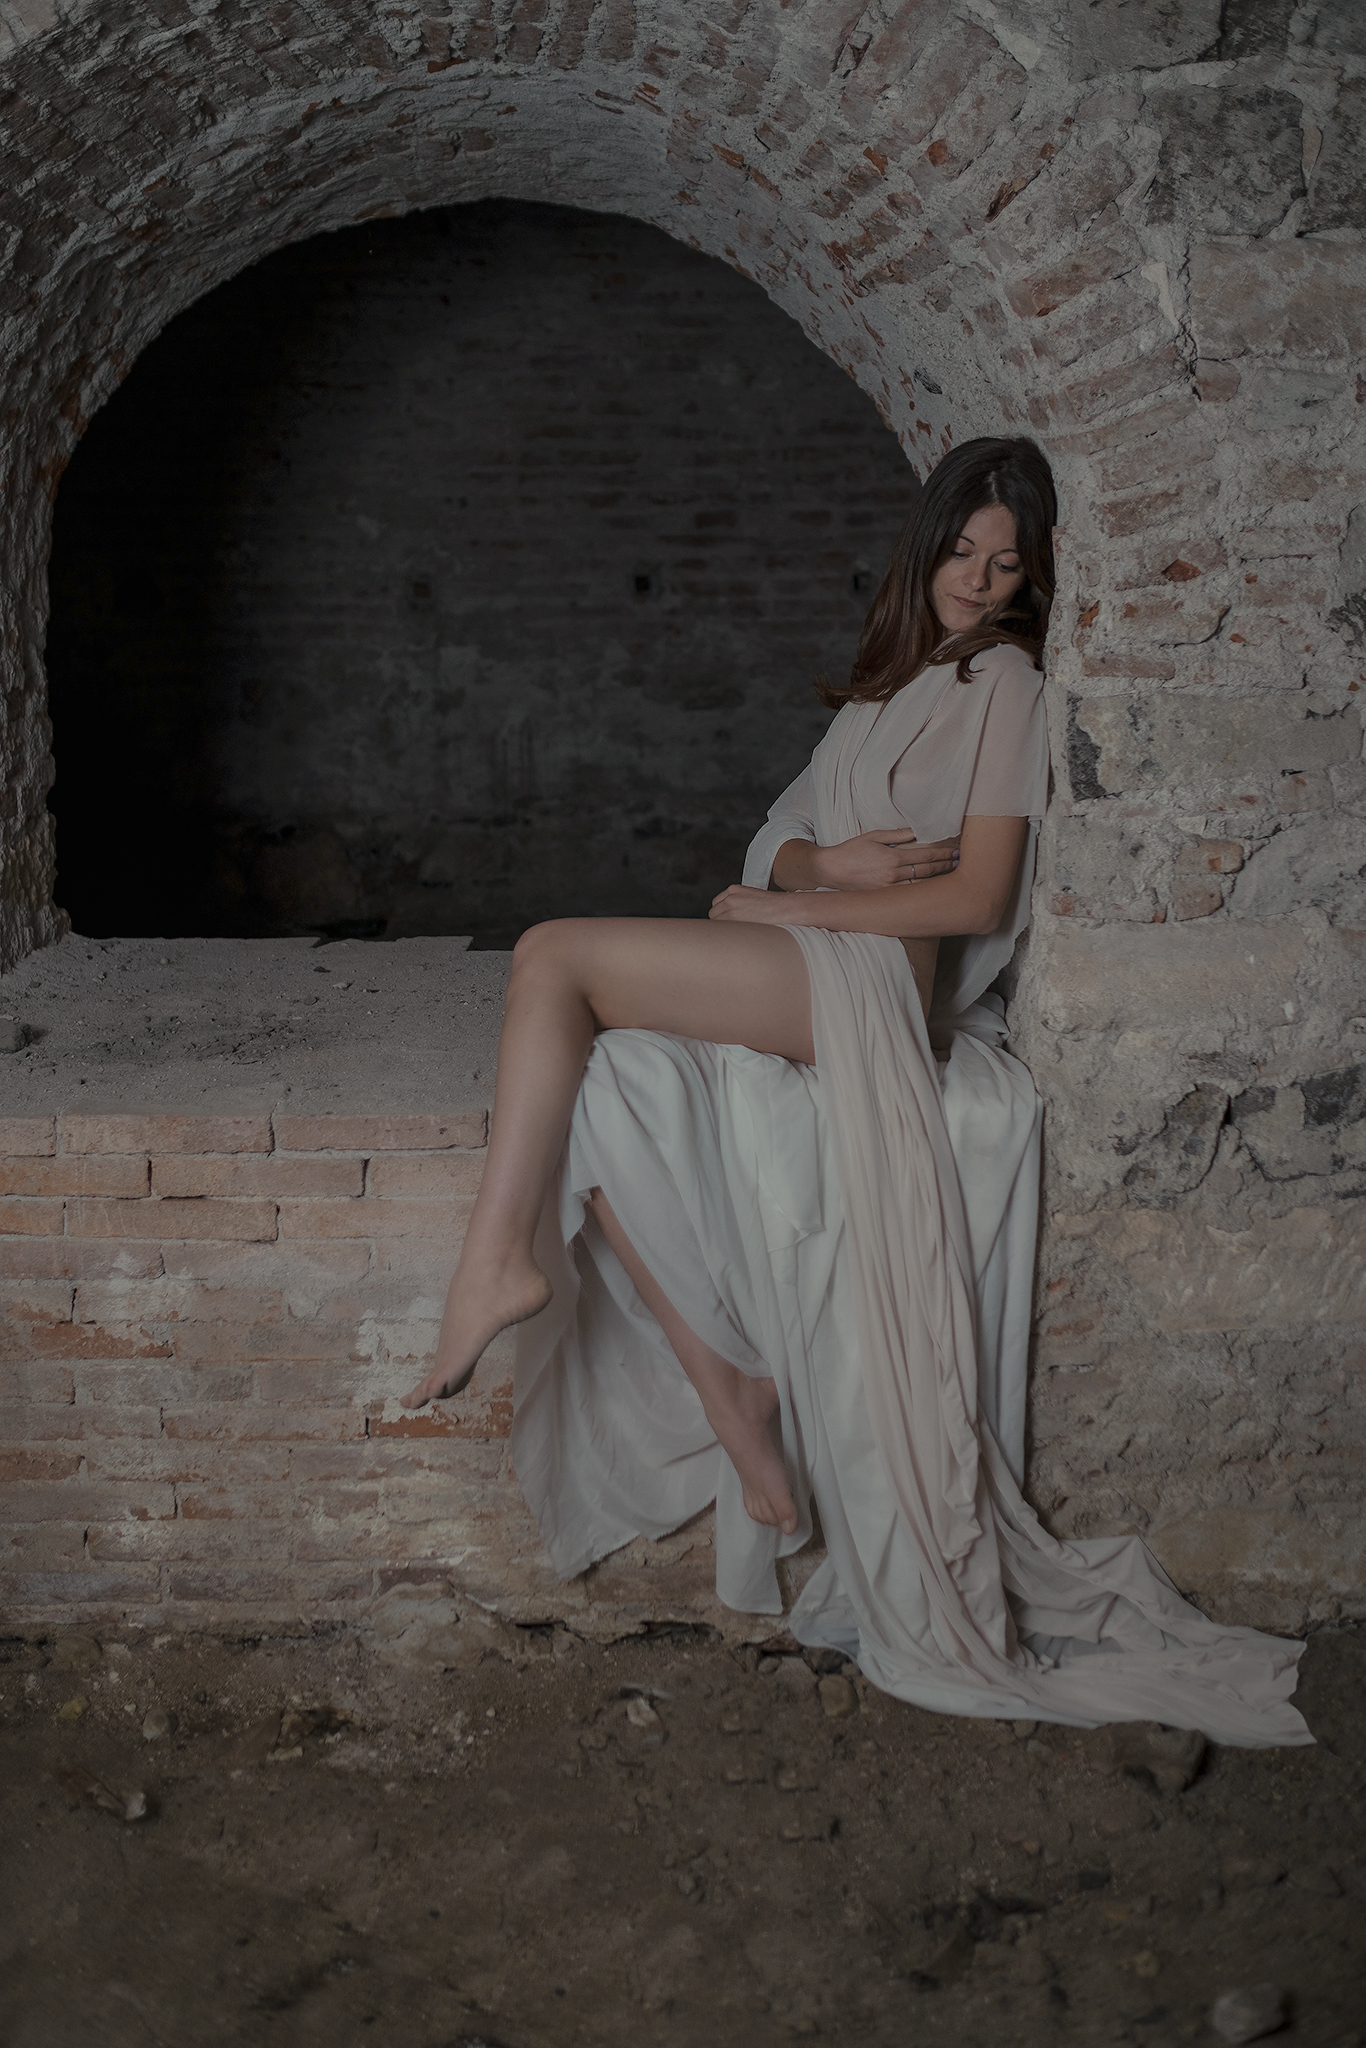 Categorie: Glamour, Portrait - Photographer: FEDERICO PASQUALINI - Model: ERIKA PRIMO - Location: Verona, VR, Italia